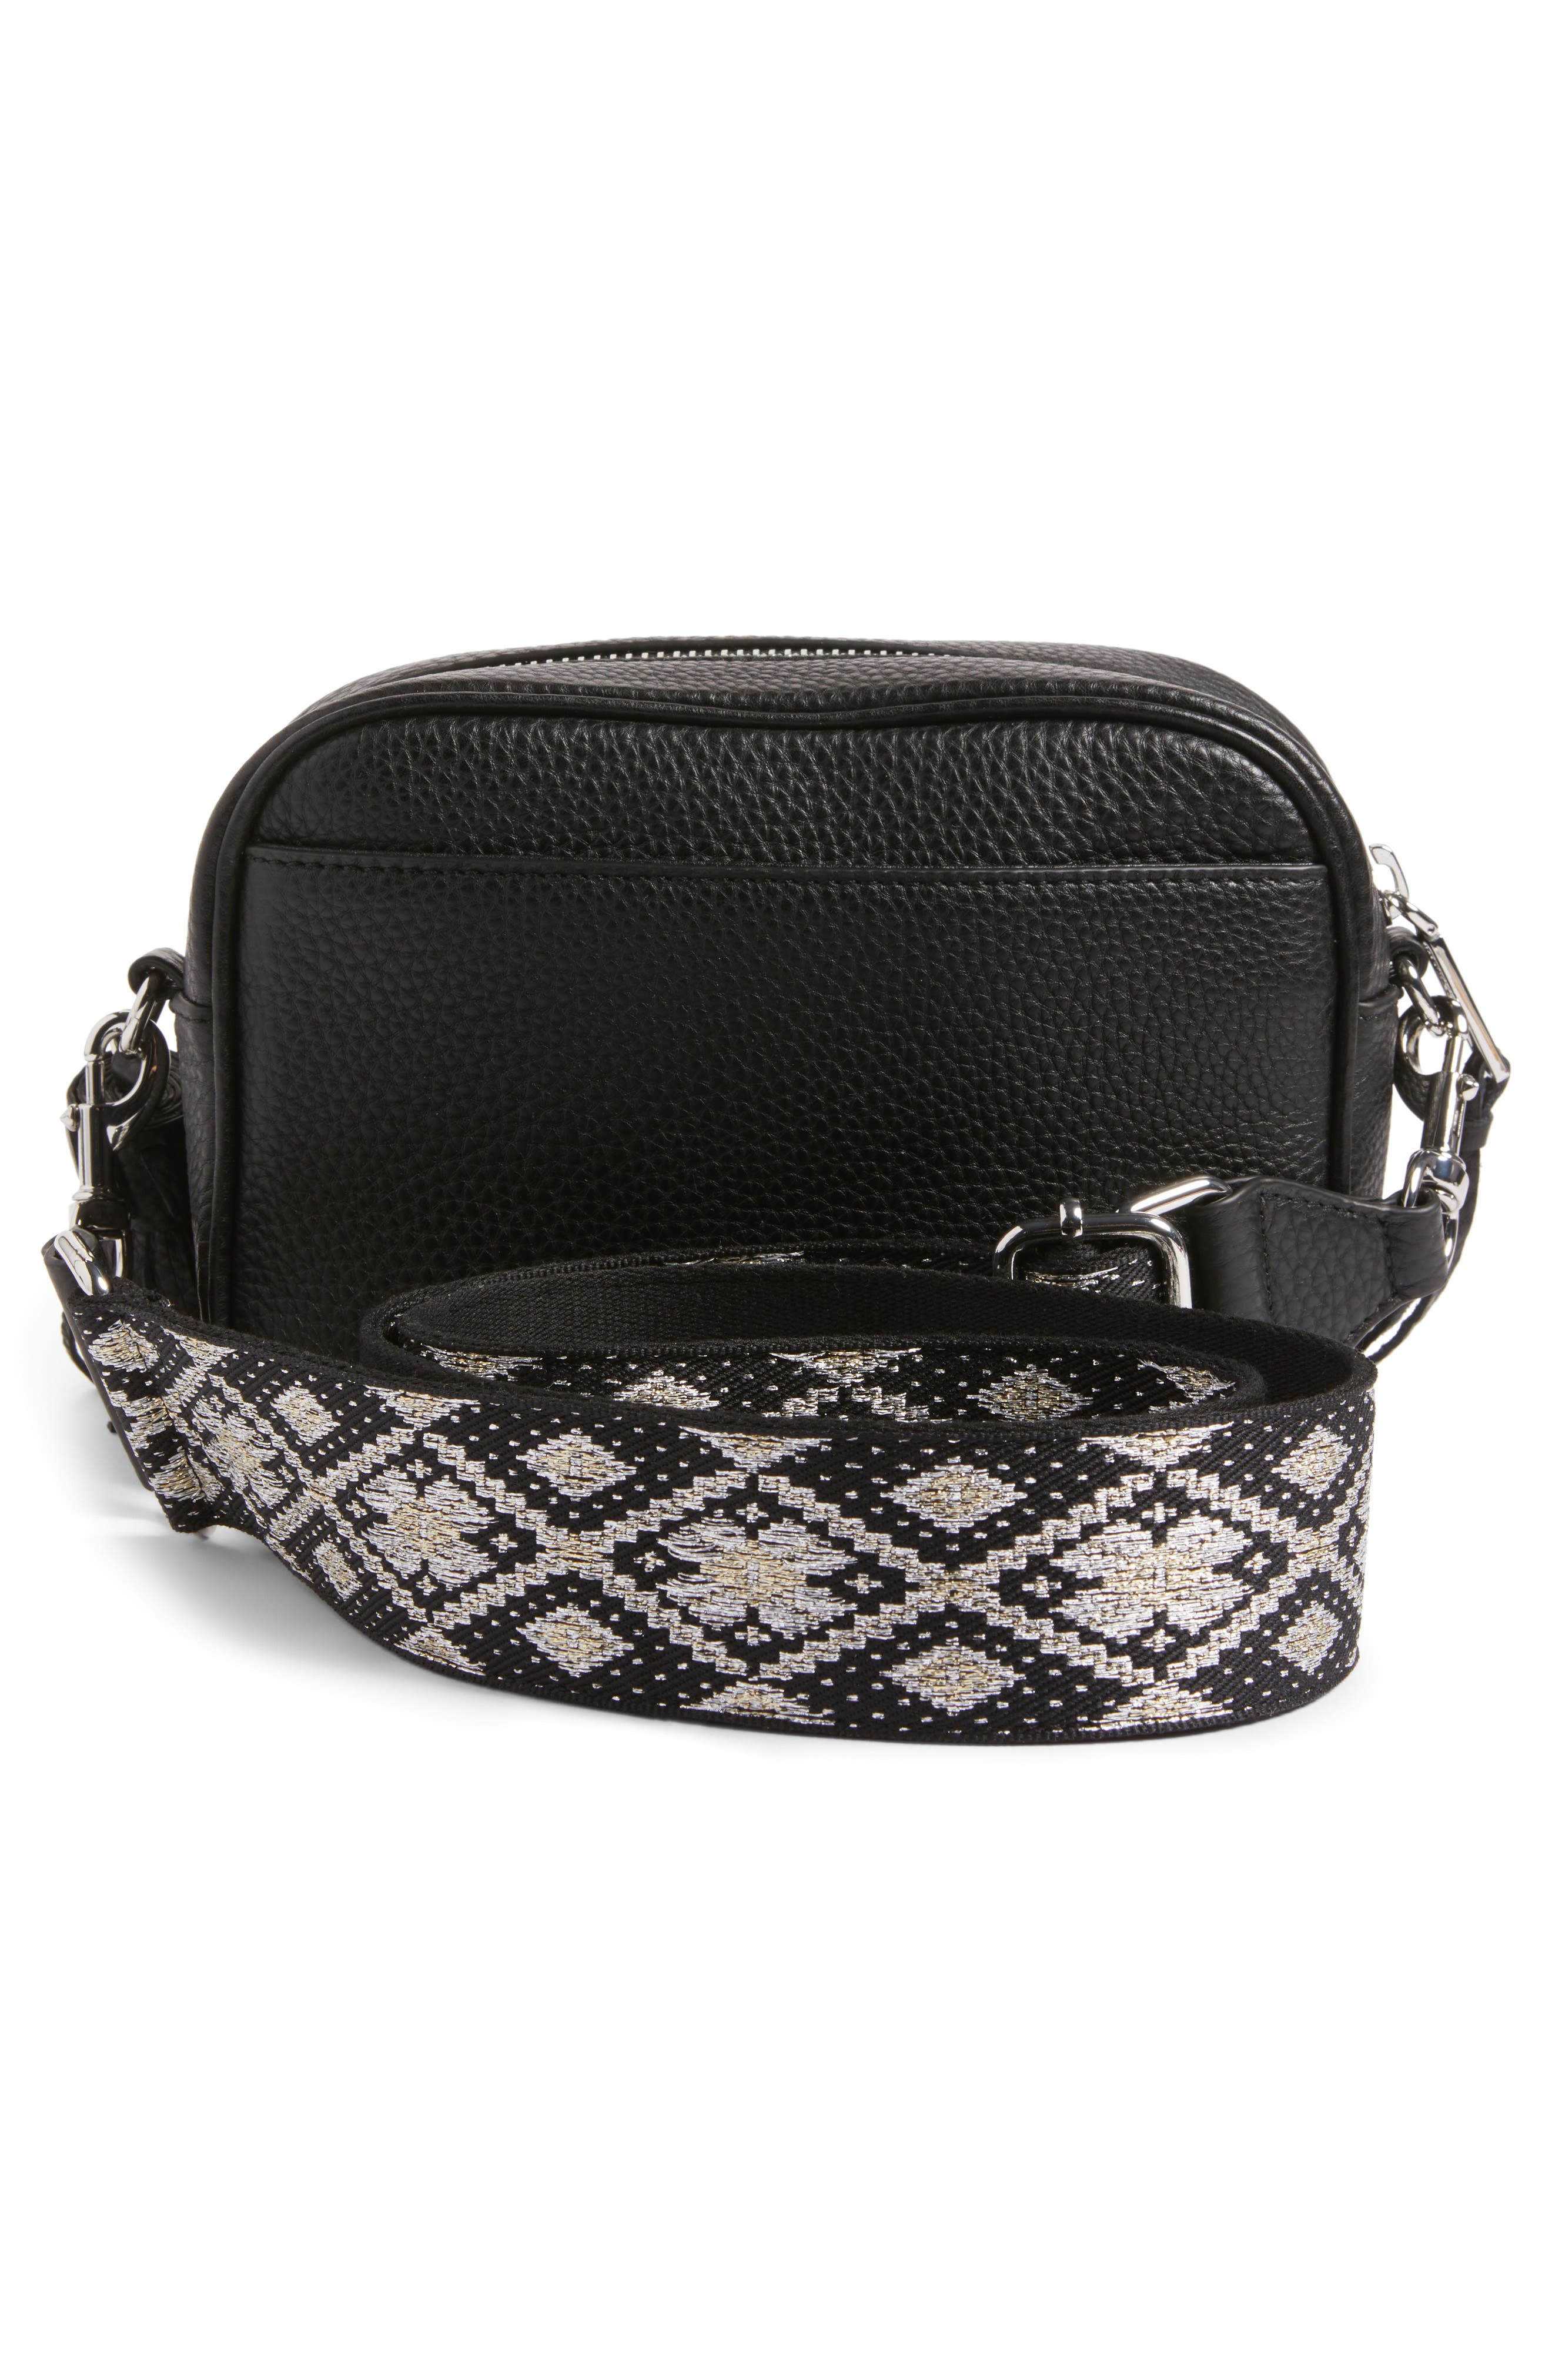 Alternate Image 3  - Rebecca Minkoff Leather Camera Bag with Guitar Strap (Nordstrom Exclusive)